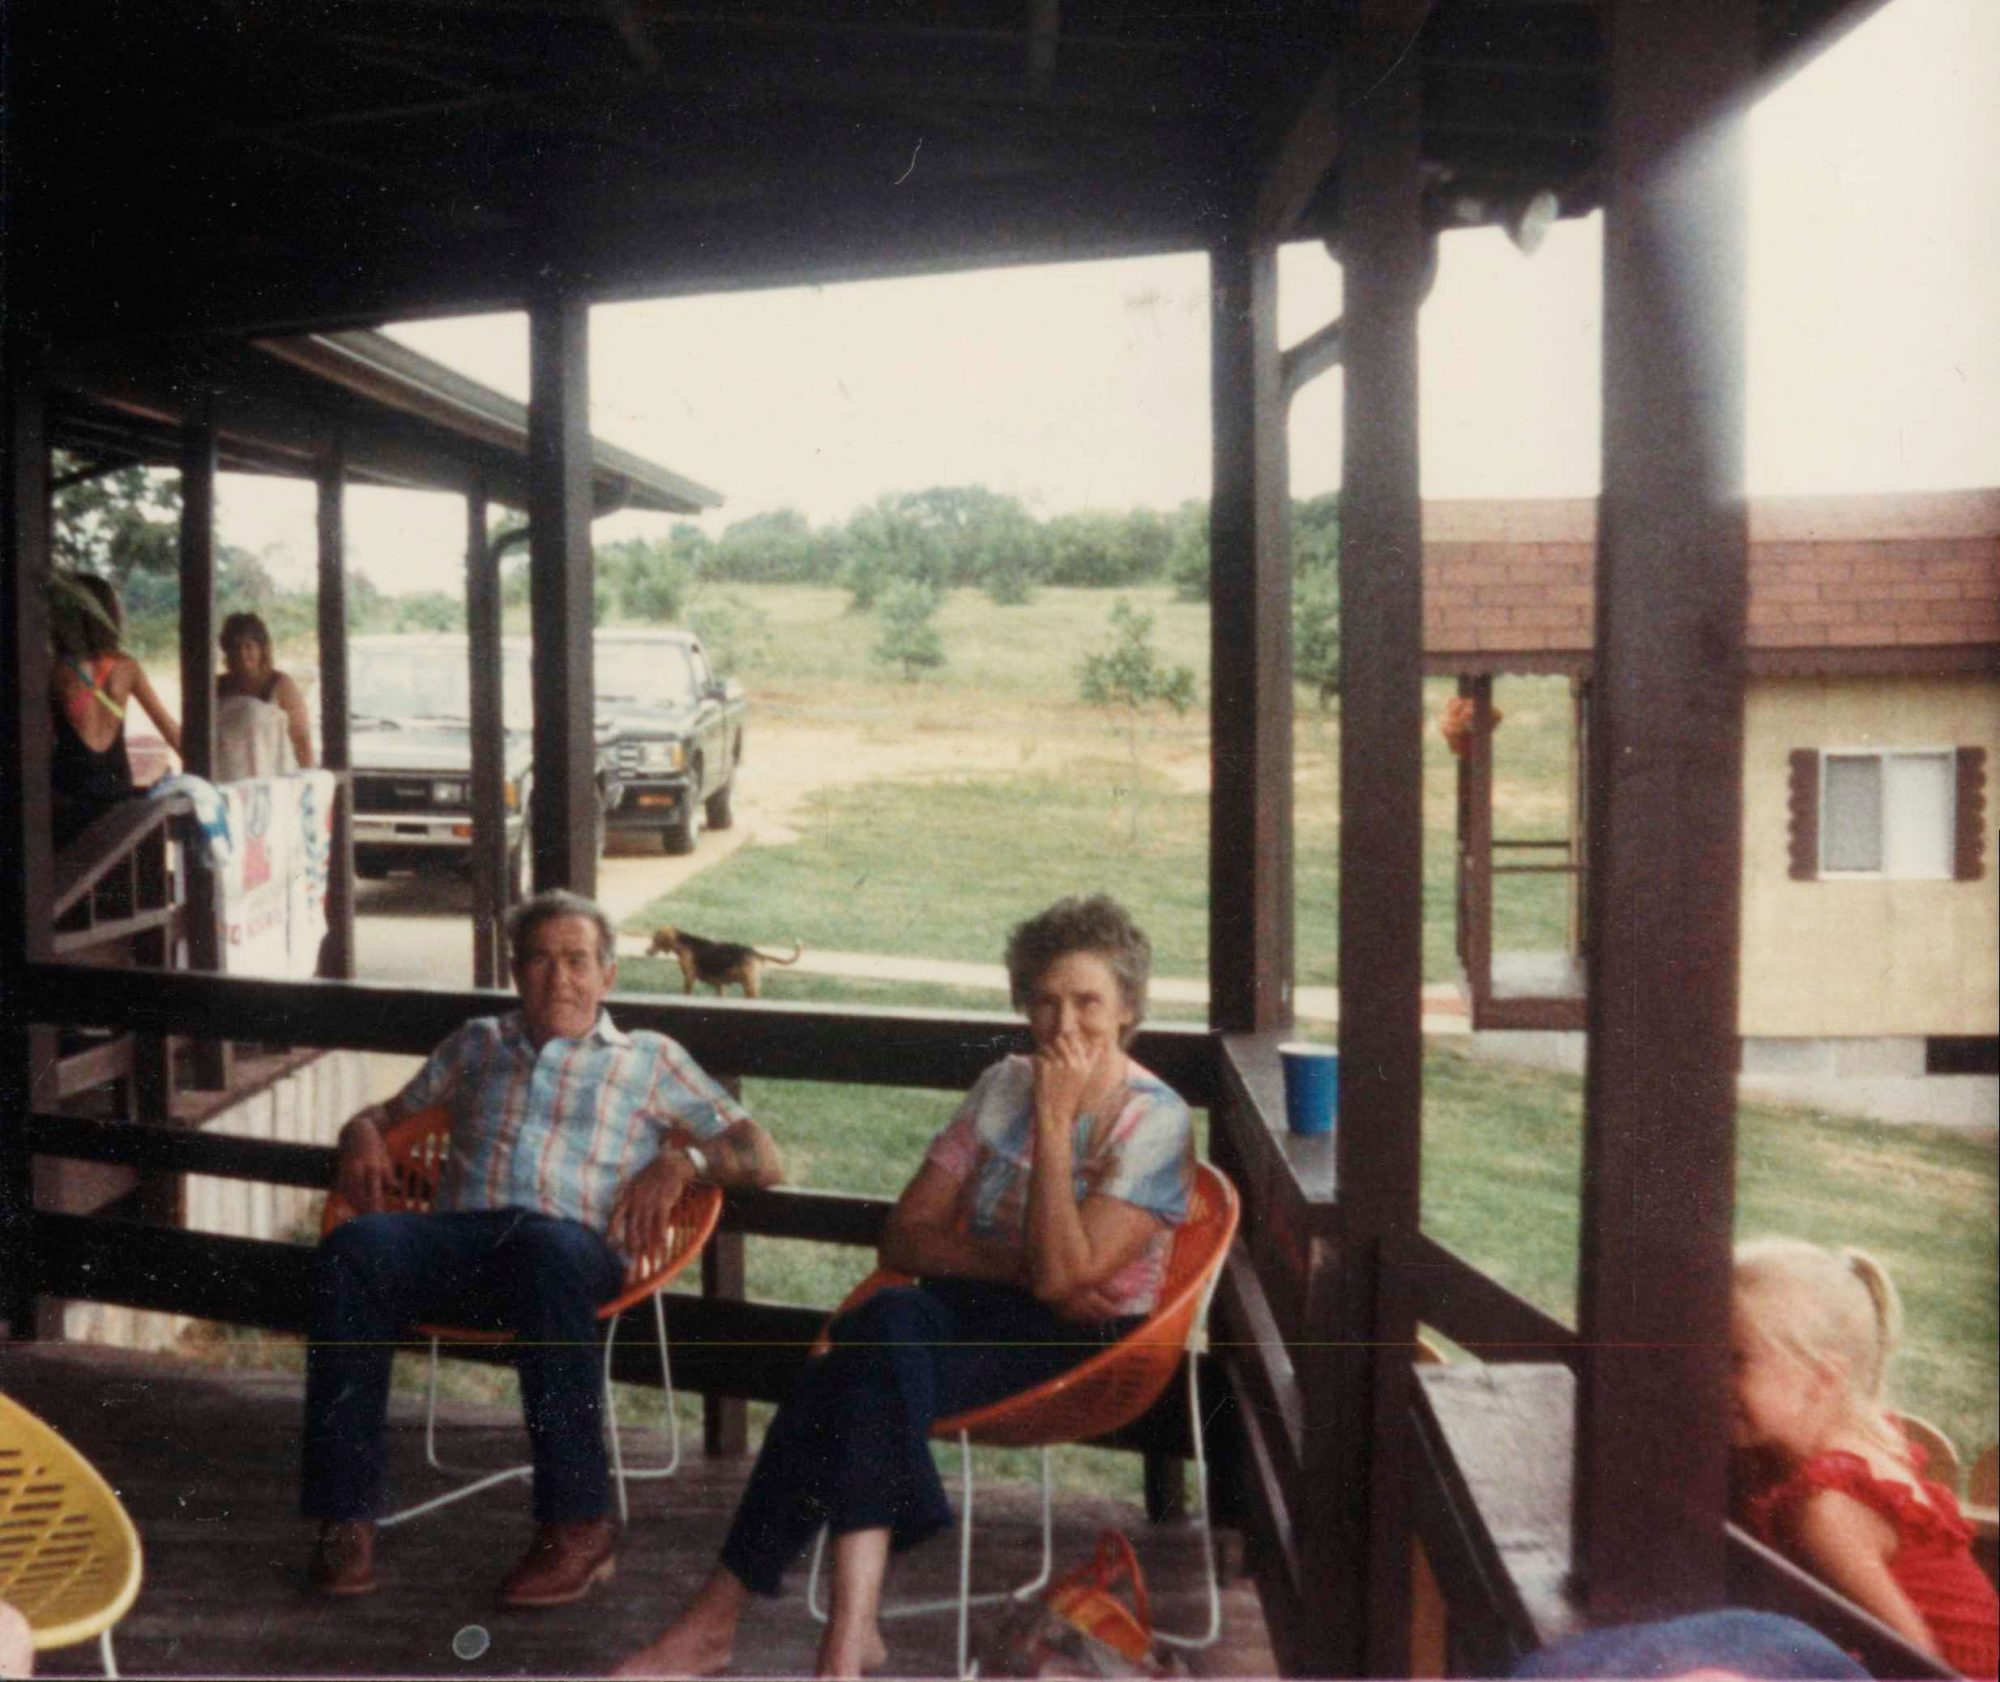 Writer Caleb Johnson's PawPaw and Granny on the porch of a relative's house in July 1985